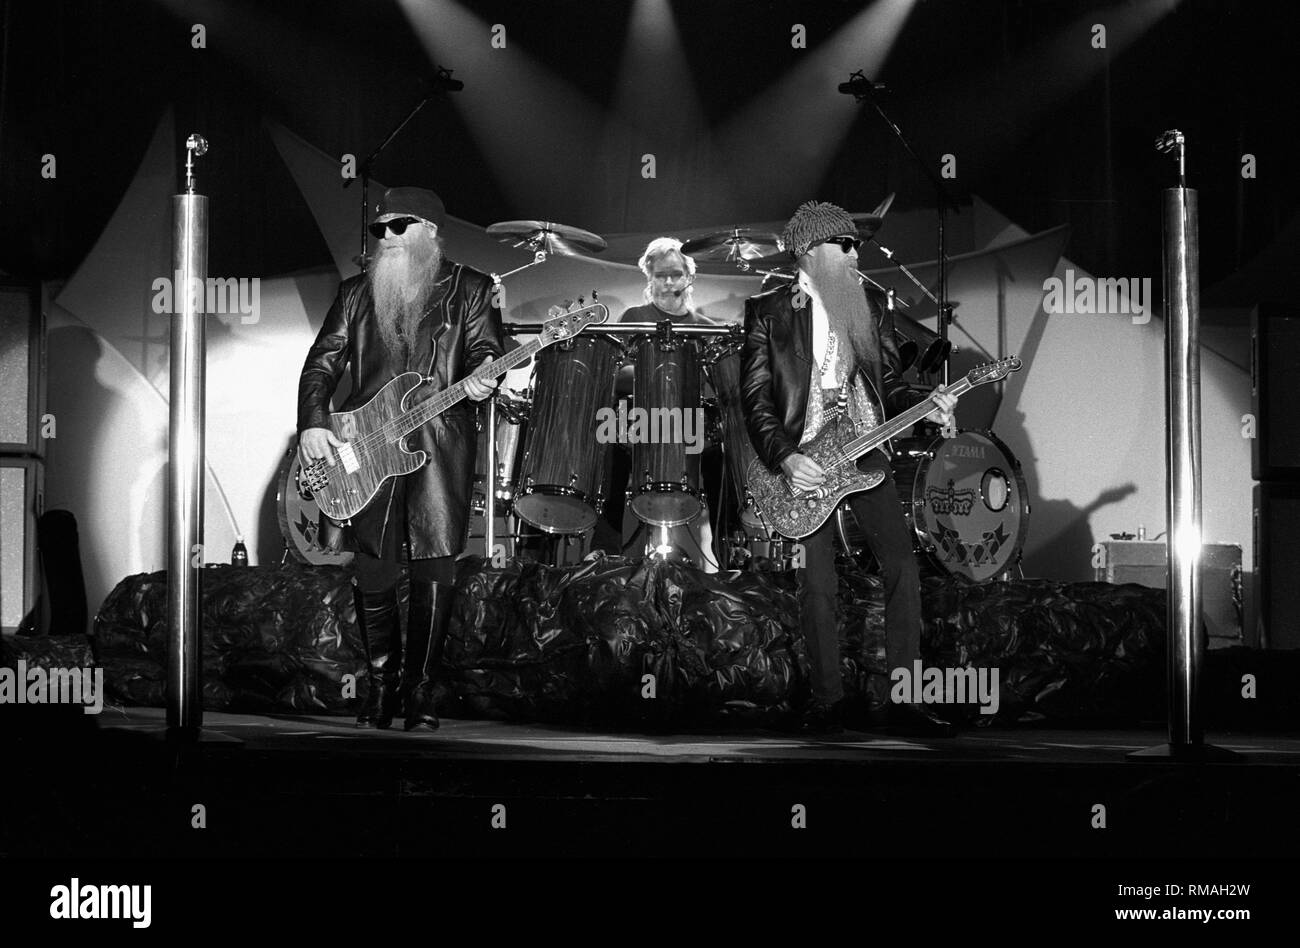 ZZ Top are shown performing on stage during a 'live' appearance. - Stock Image